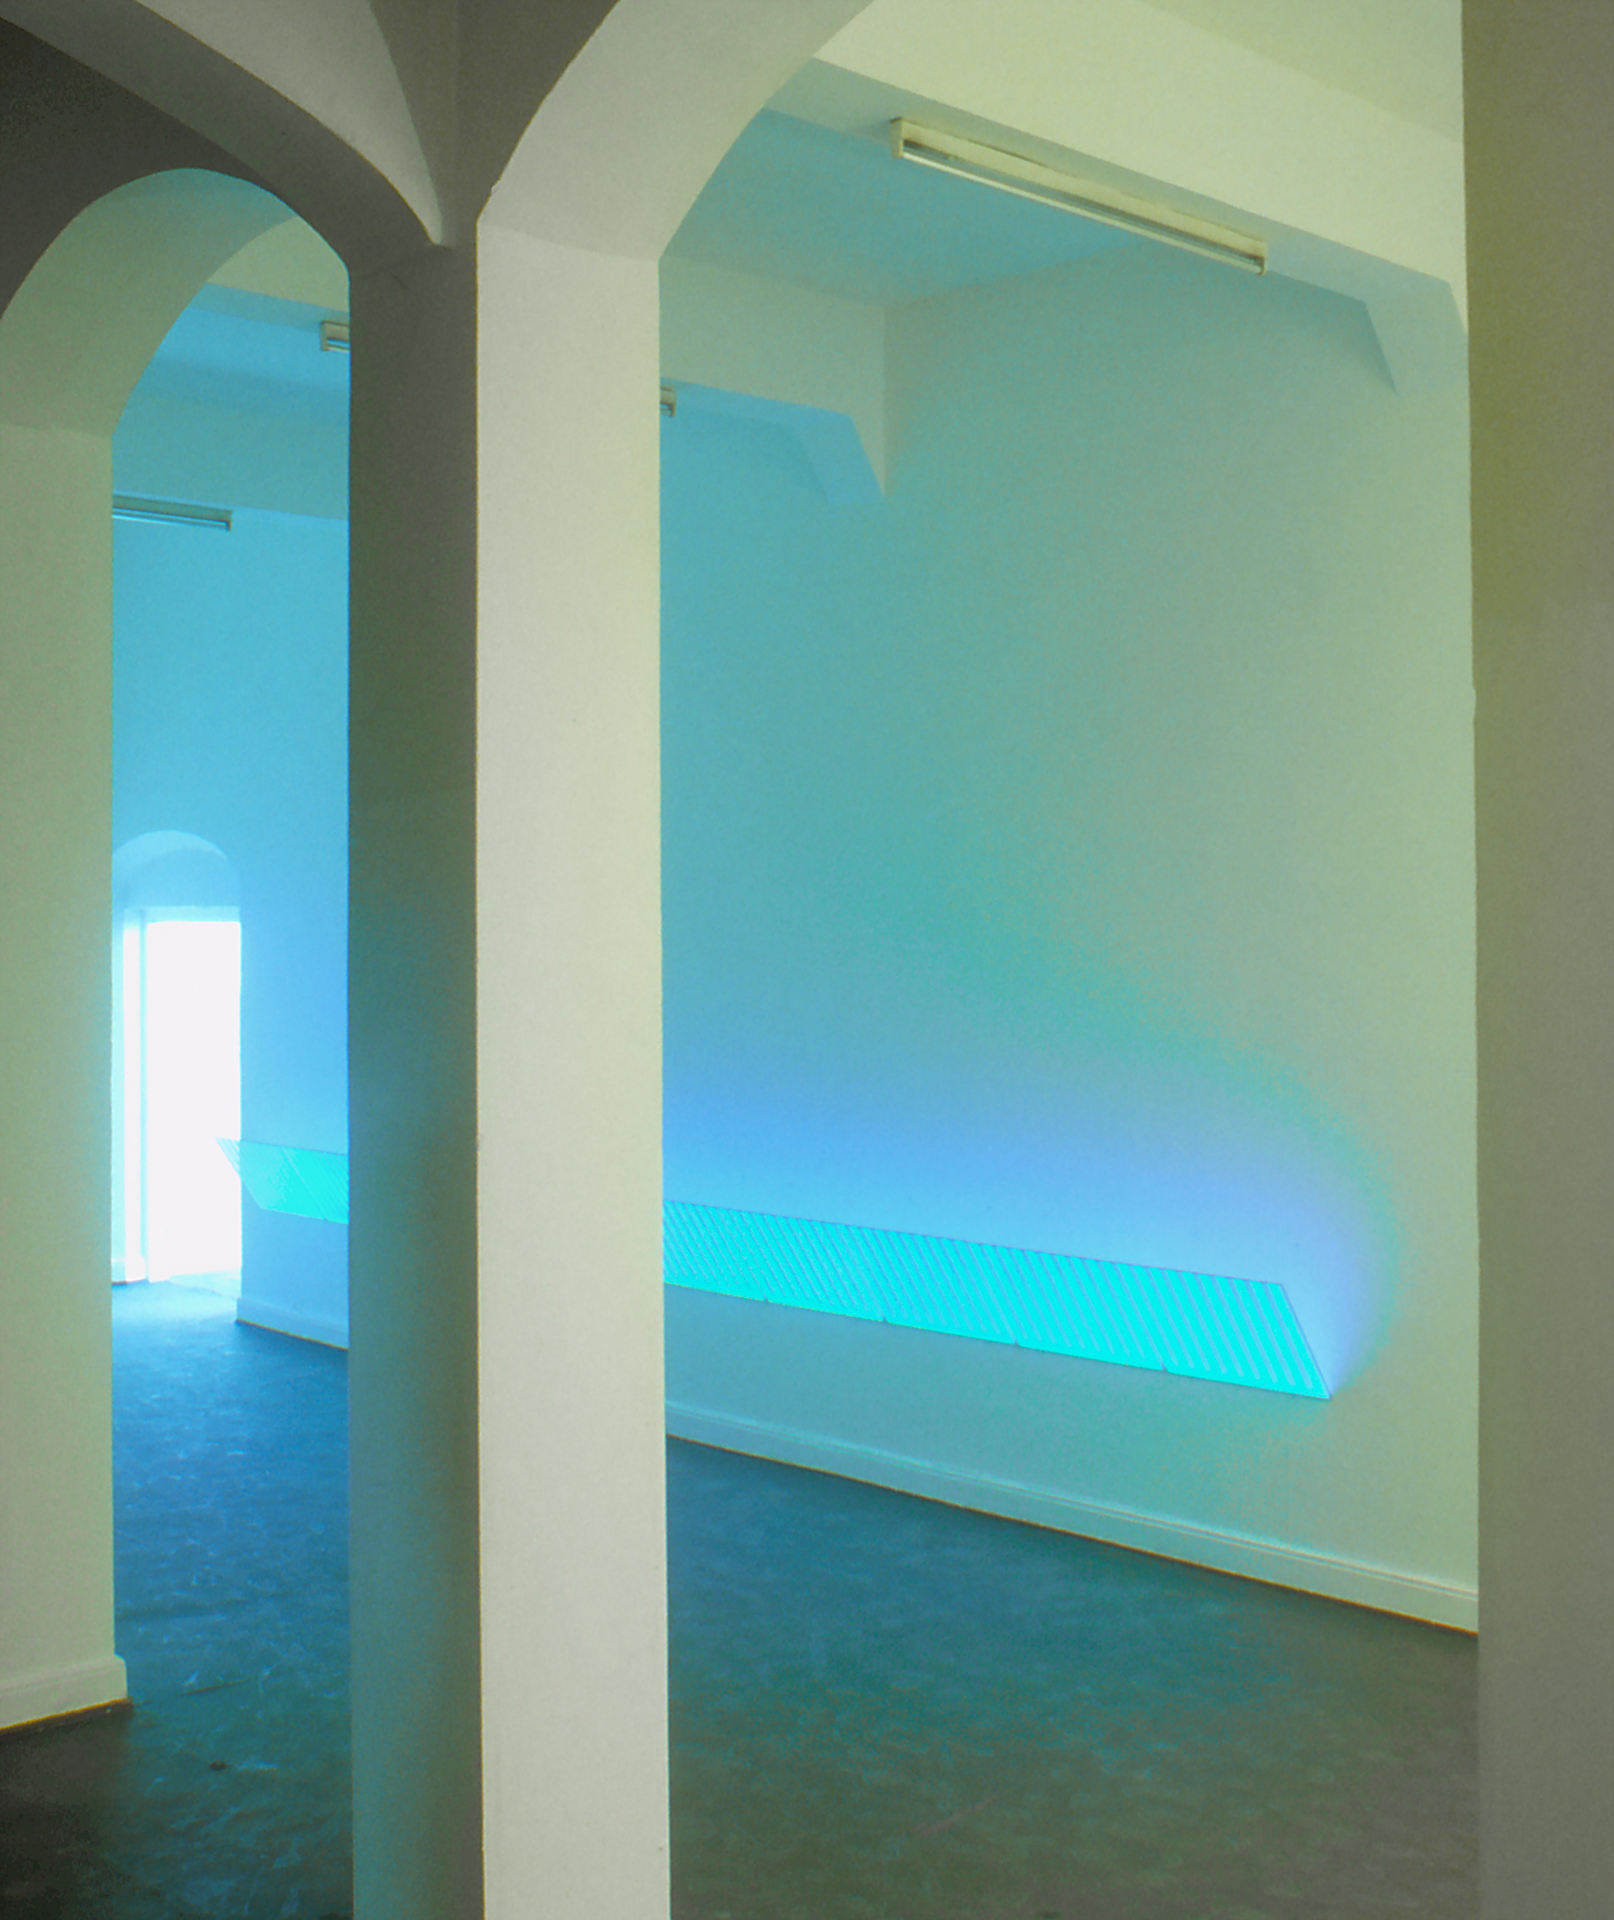 daniel_hausig_indirektes_lichtrecycling_1995_light-art-installation